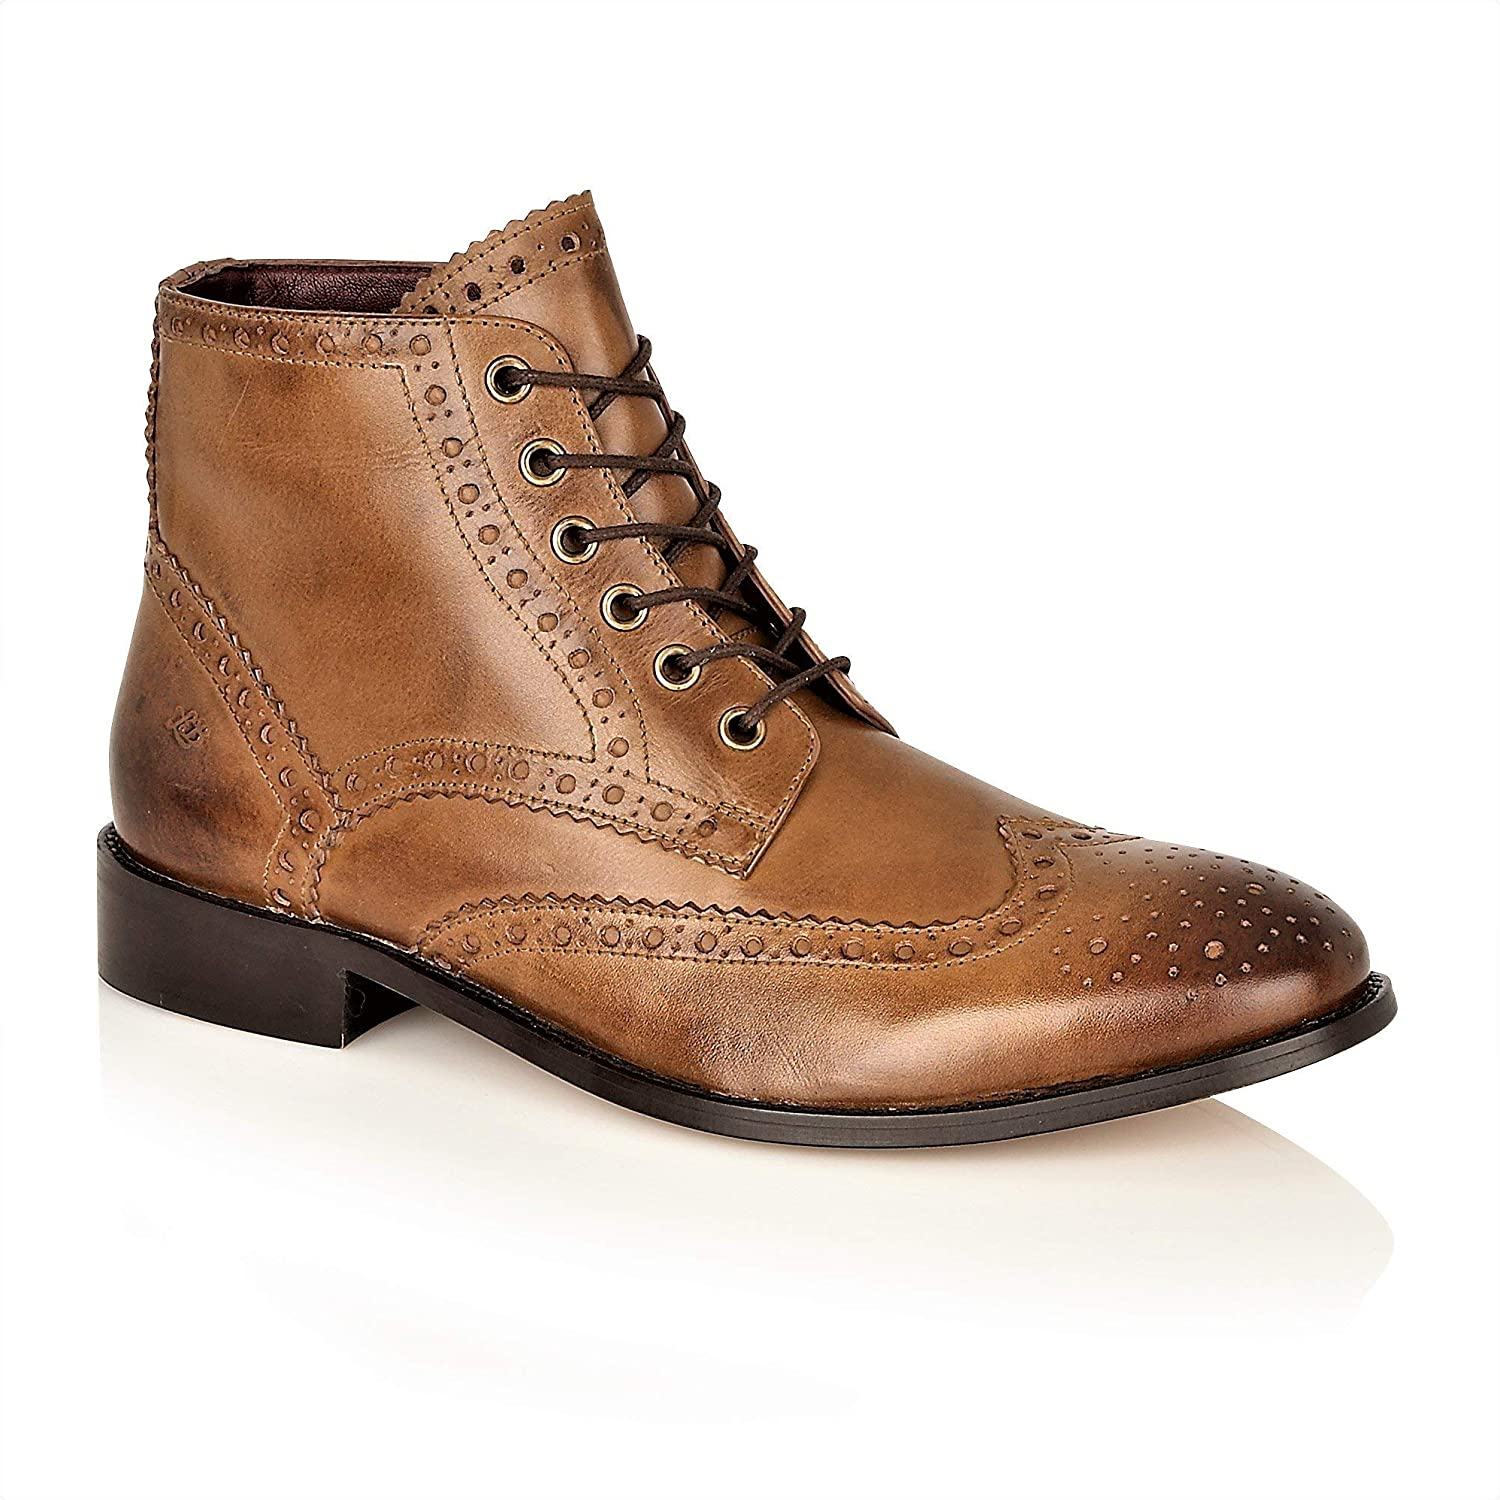 London Brogues Sky Walker Gatsby Hi Boots Leather Wingtip Ankle Formal Wedding Boots